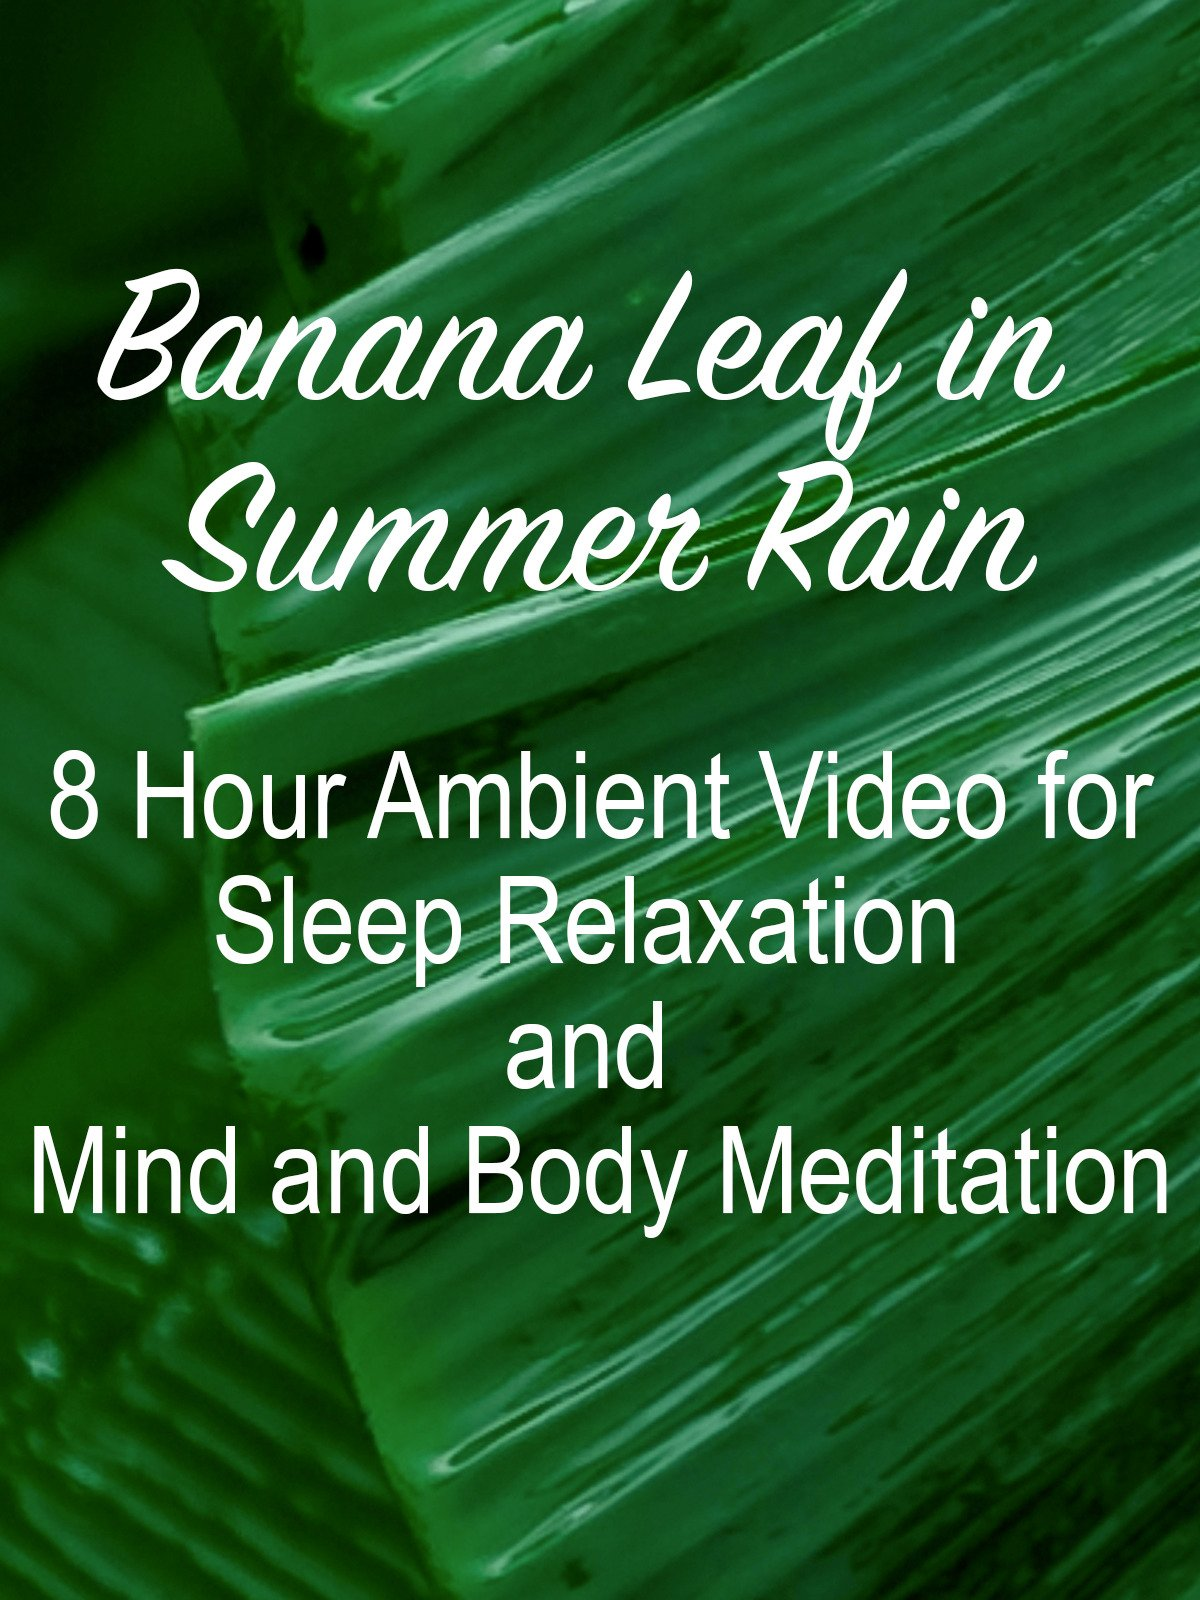 Banana Leaf in Summer Rain 8 Hour Ambient Video for Sleep Relaxation and Mind and Body Meditation